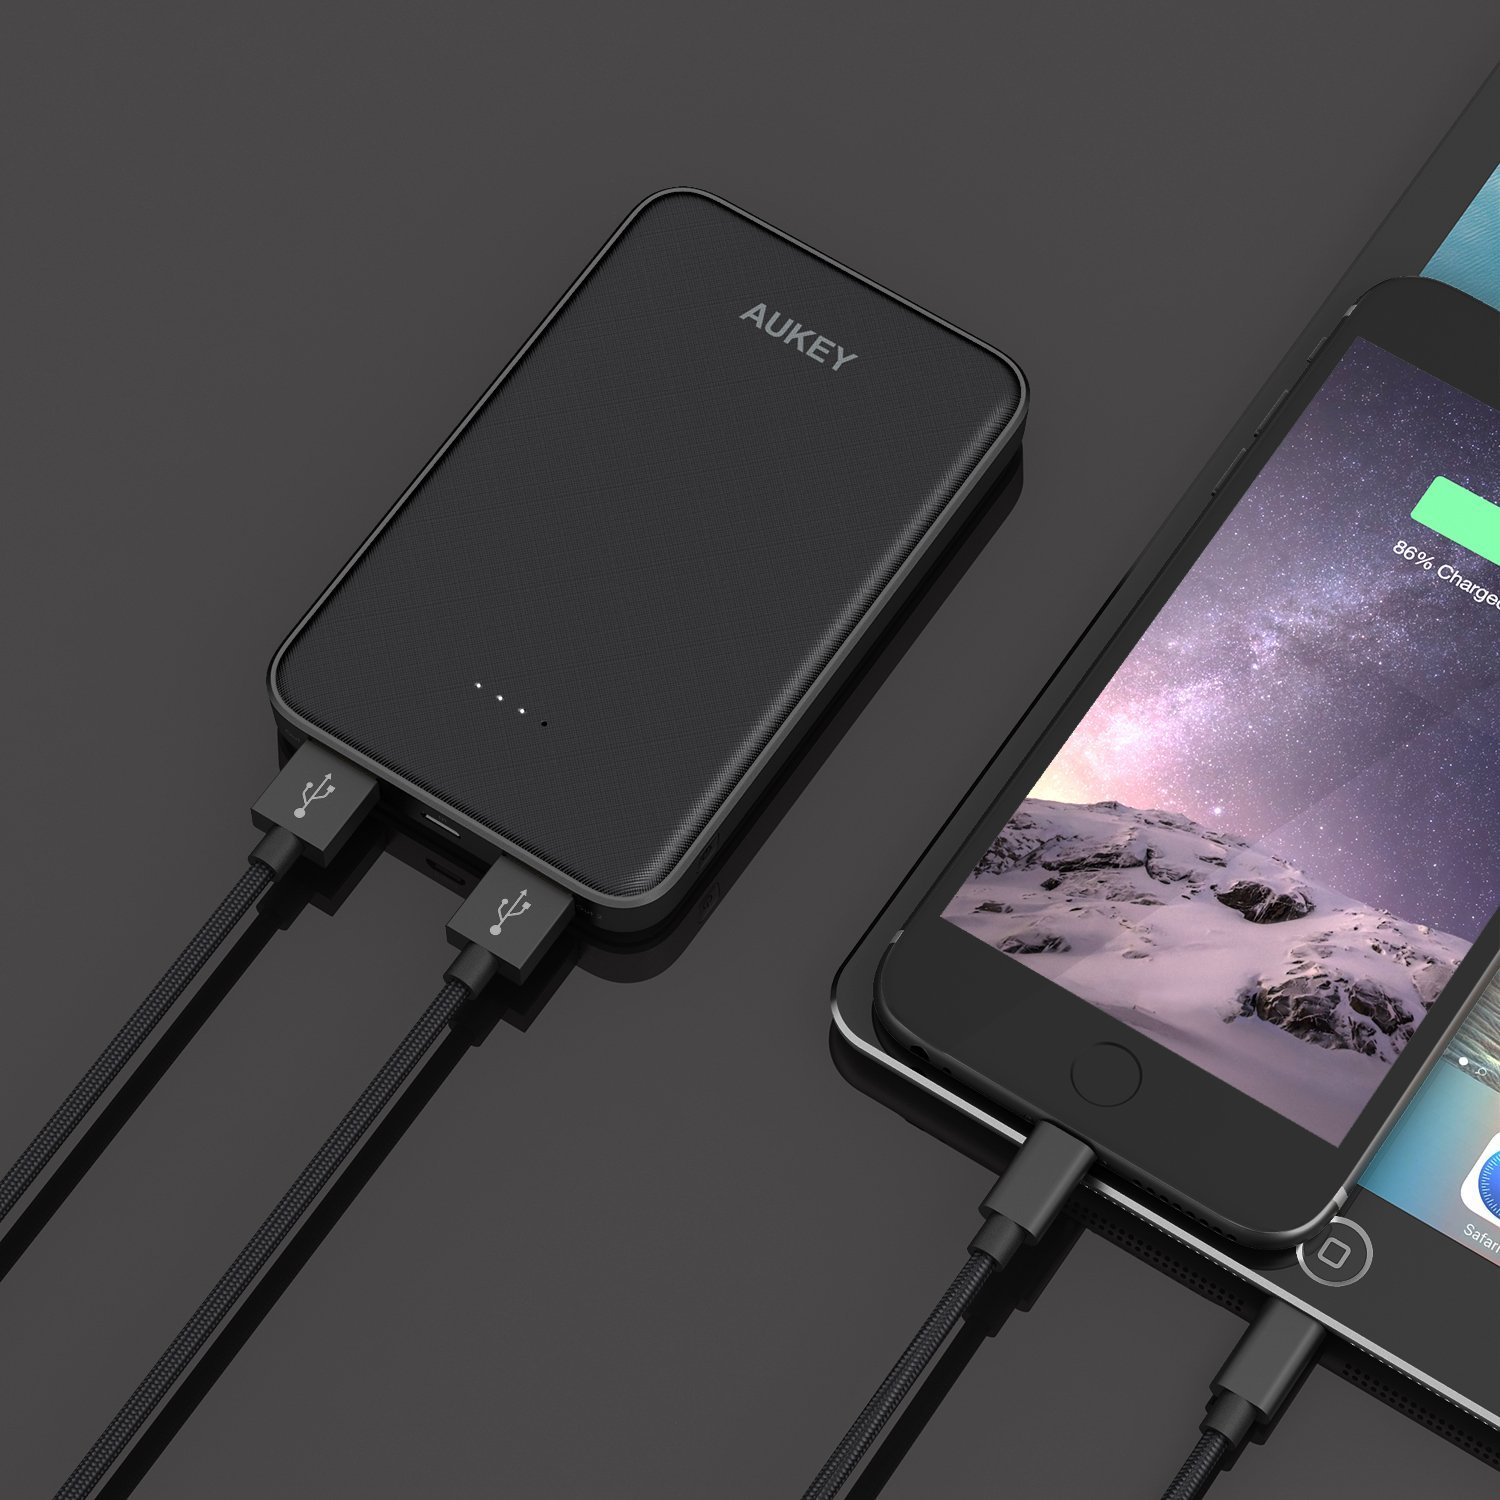 aukey 12000mah portable power bank manual